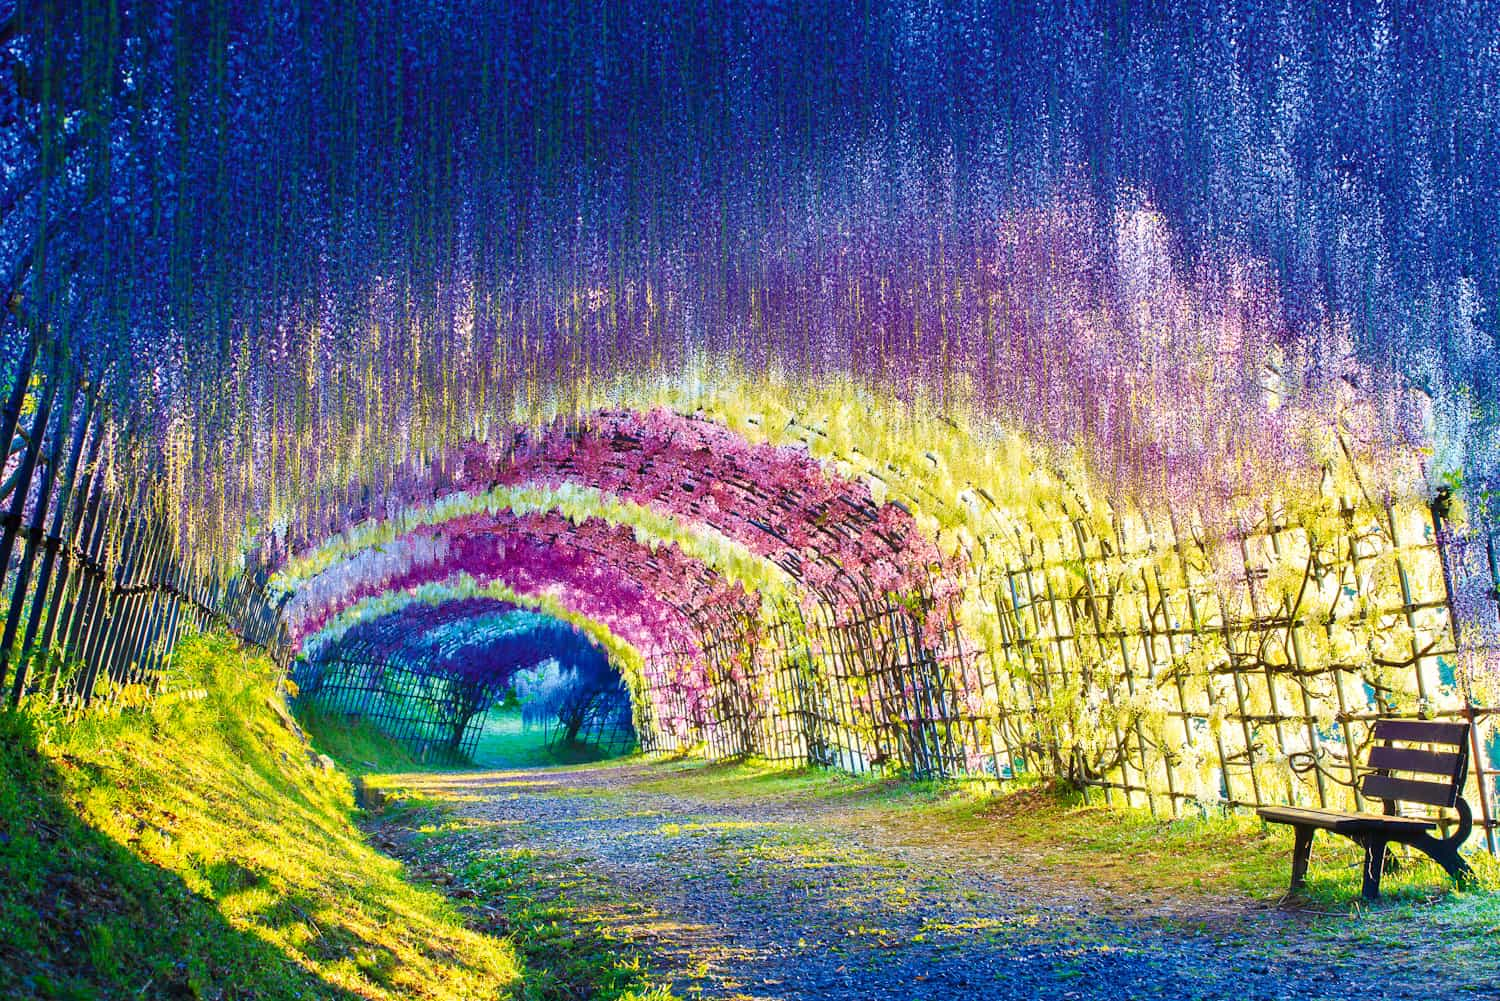 There were no special effects, no photoshop, no editing involved. Wisteria Tunnel